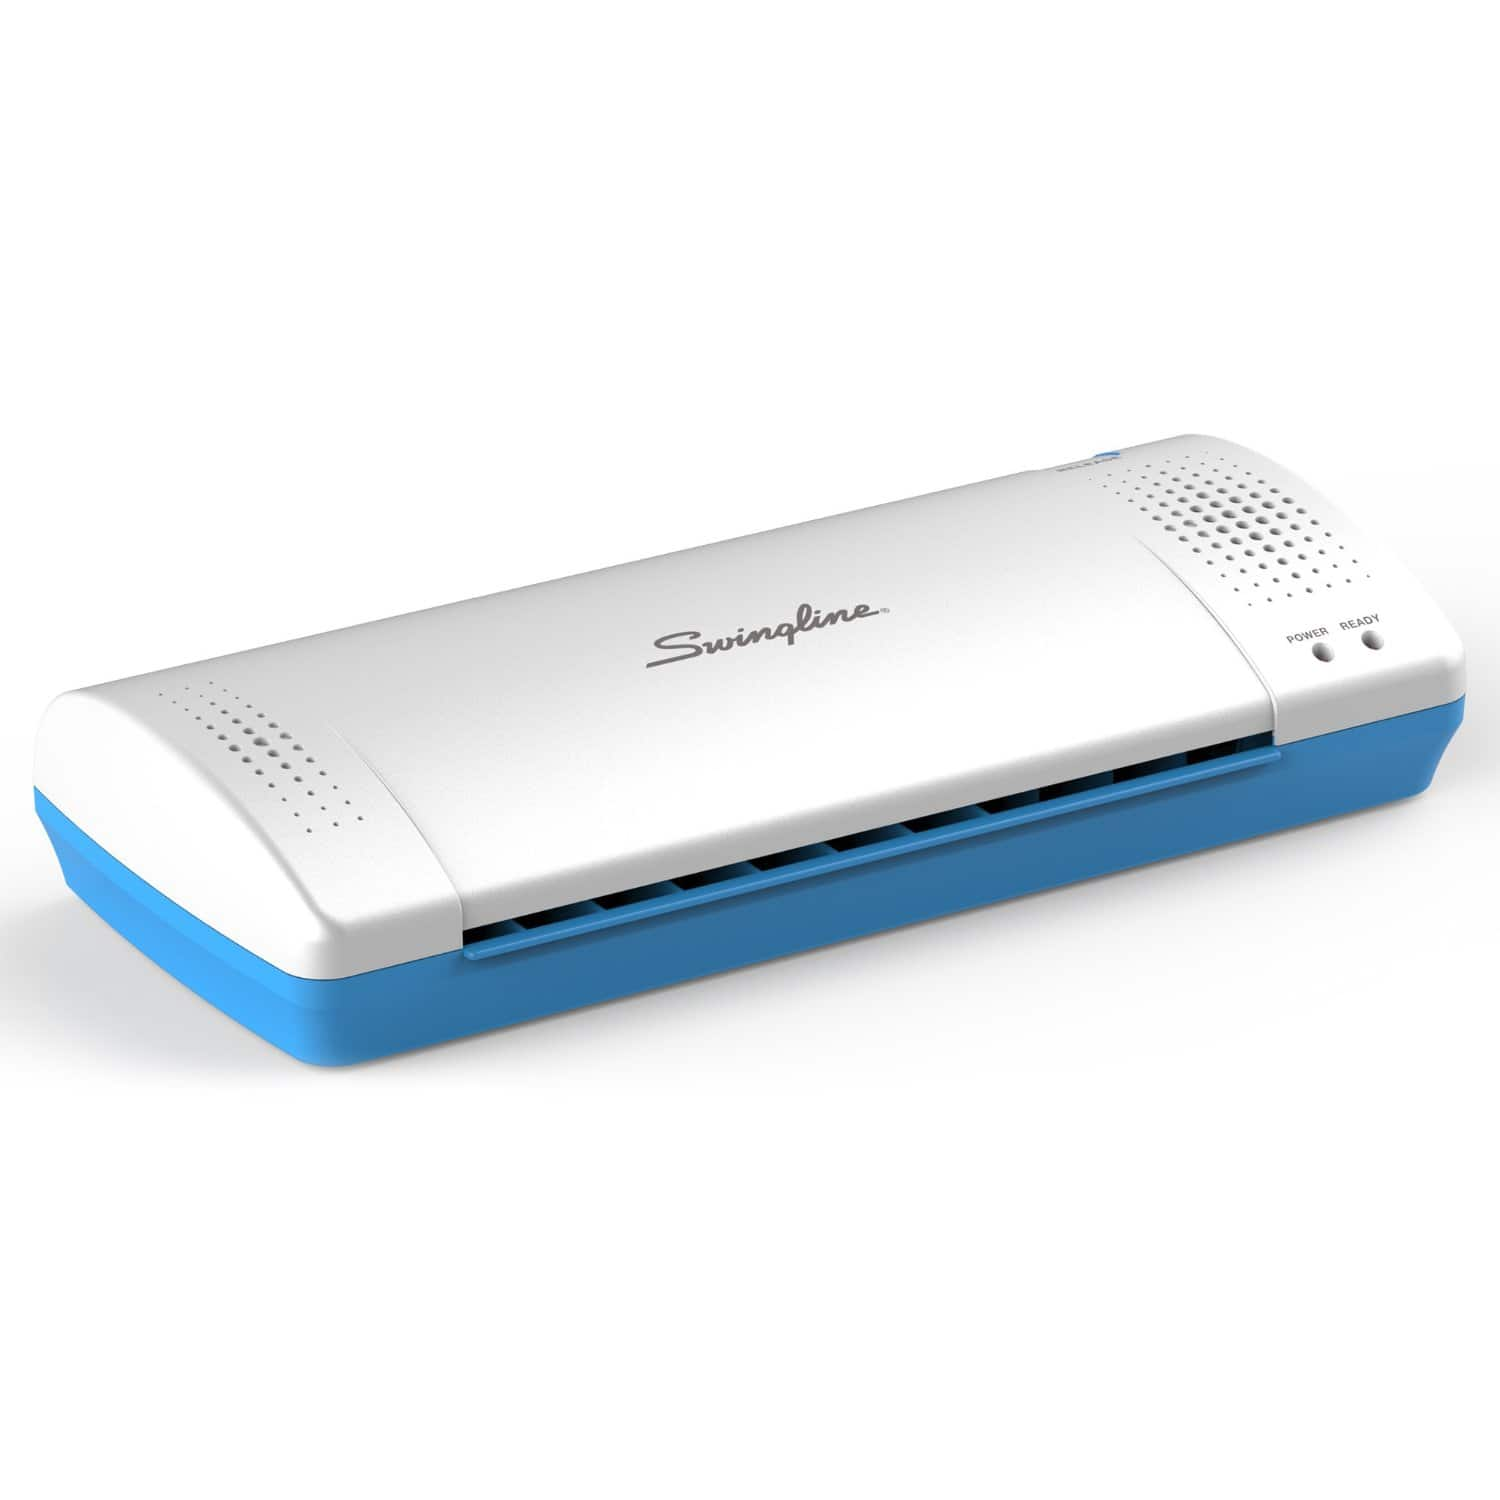 "Swingline Thermal Laminator Inspire Plus 9"" w/ Laminating Pouches  $15.40"